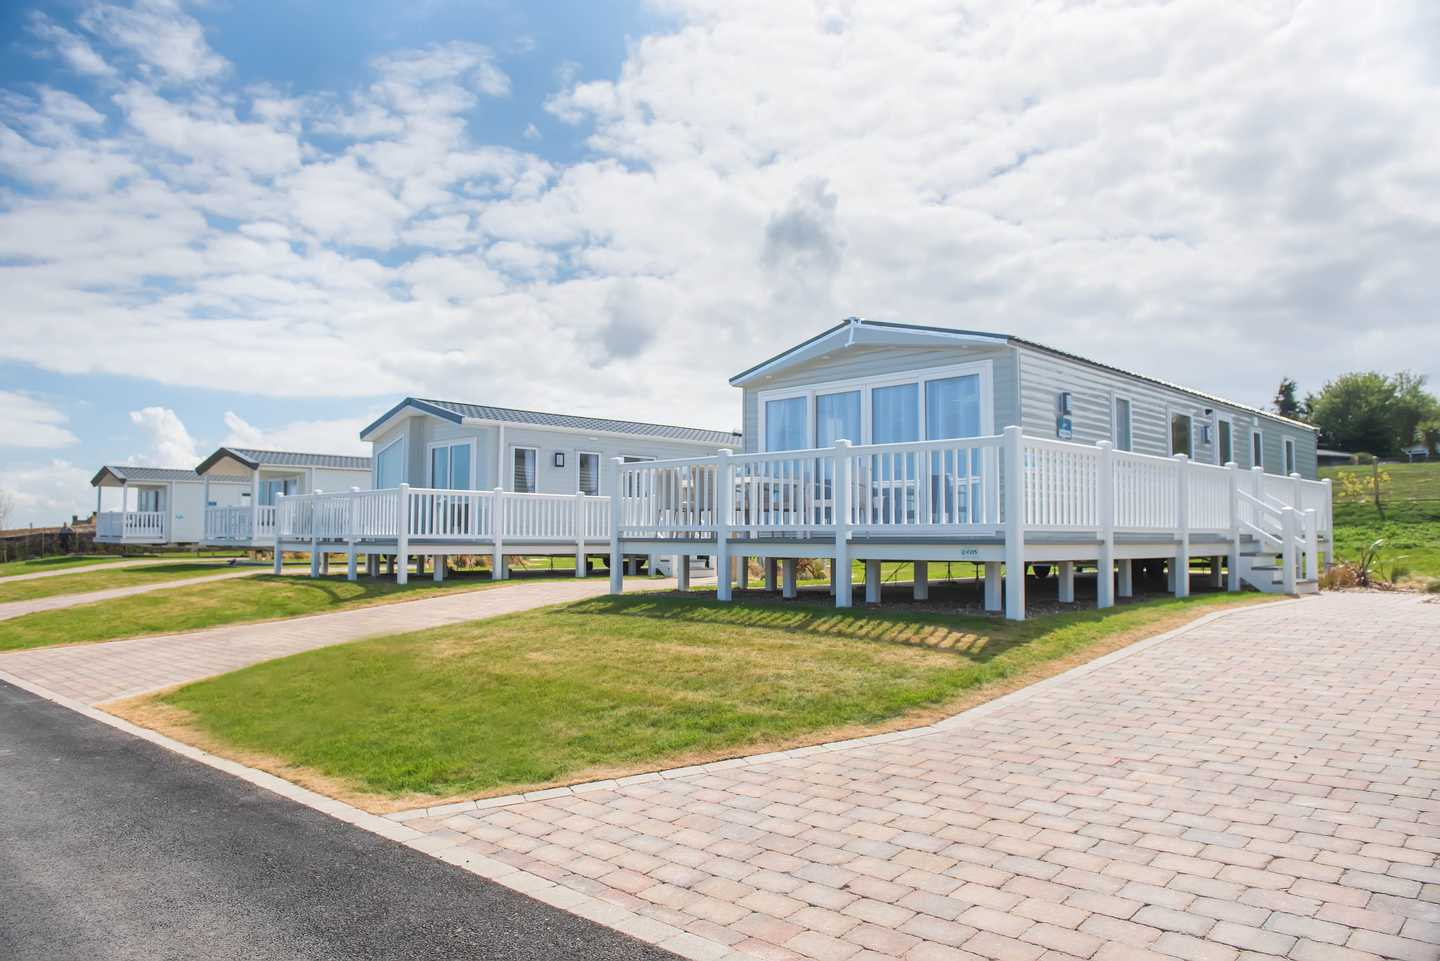 View of several Platinum with decking at Lakeview caravans